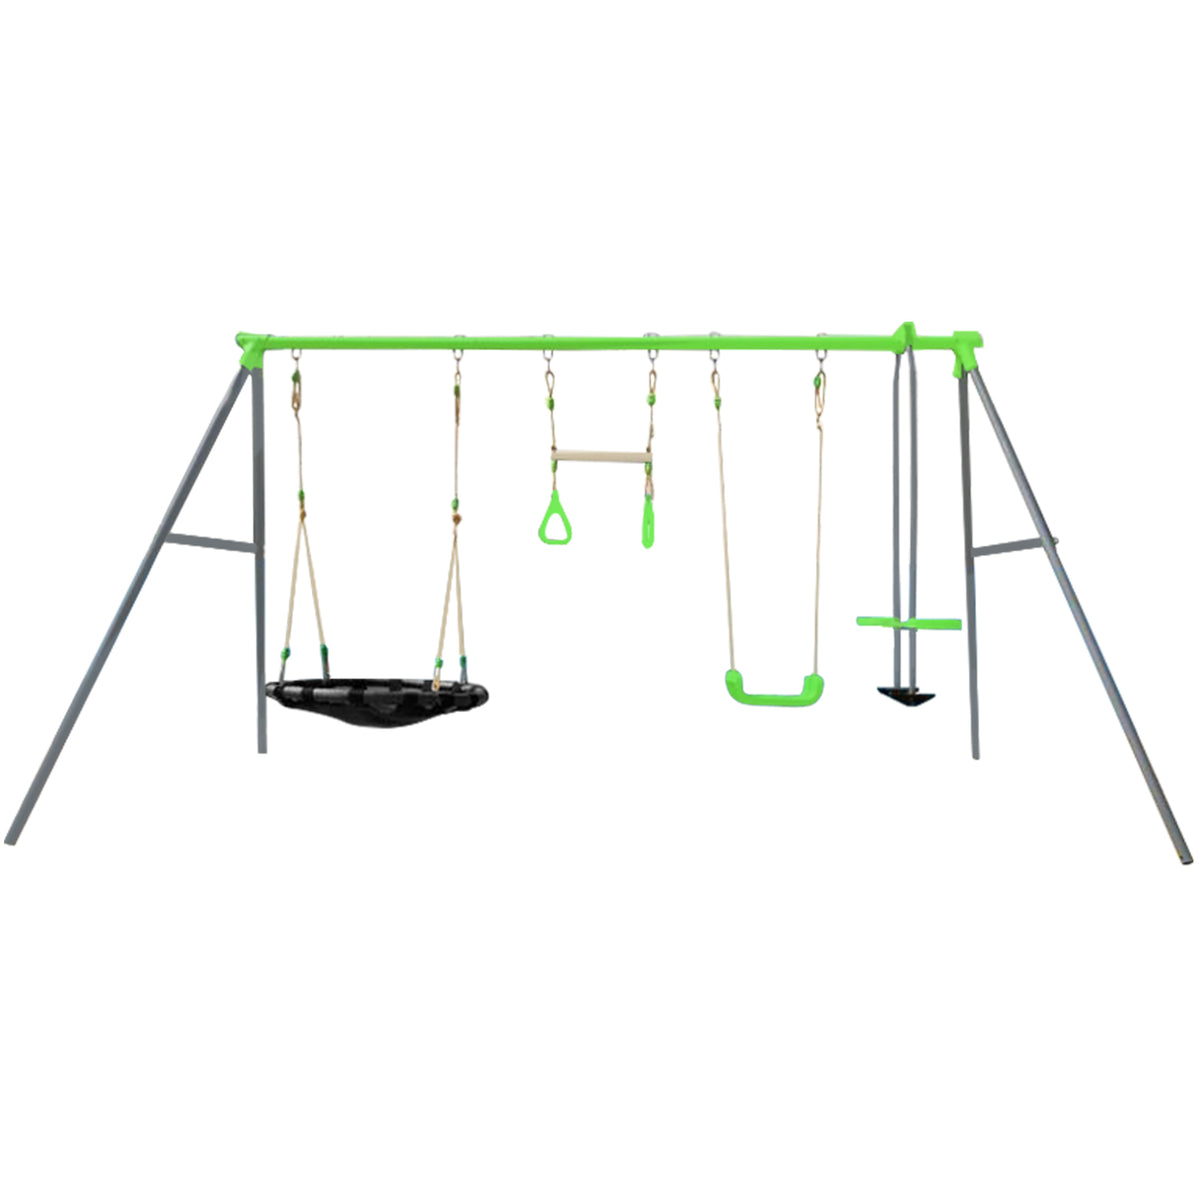 Lifespan Kids Lynx 4 Station Swing Set